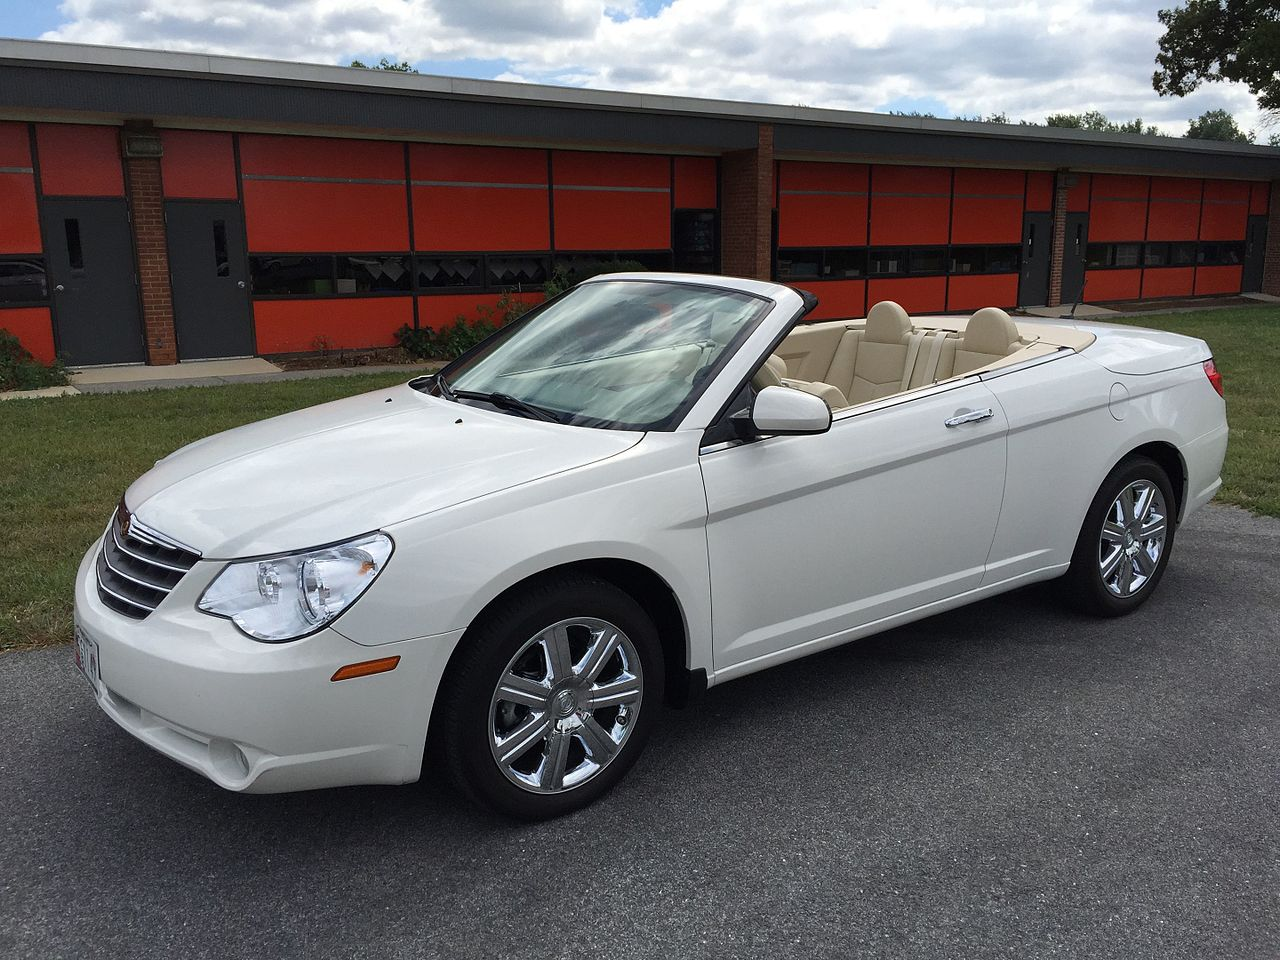 file chrysler sebring convertible third generation js top down white wikimedia. Black Bedroom Furniture Sets. Home Design Ideas